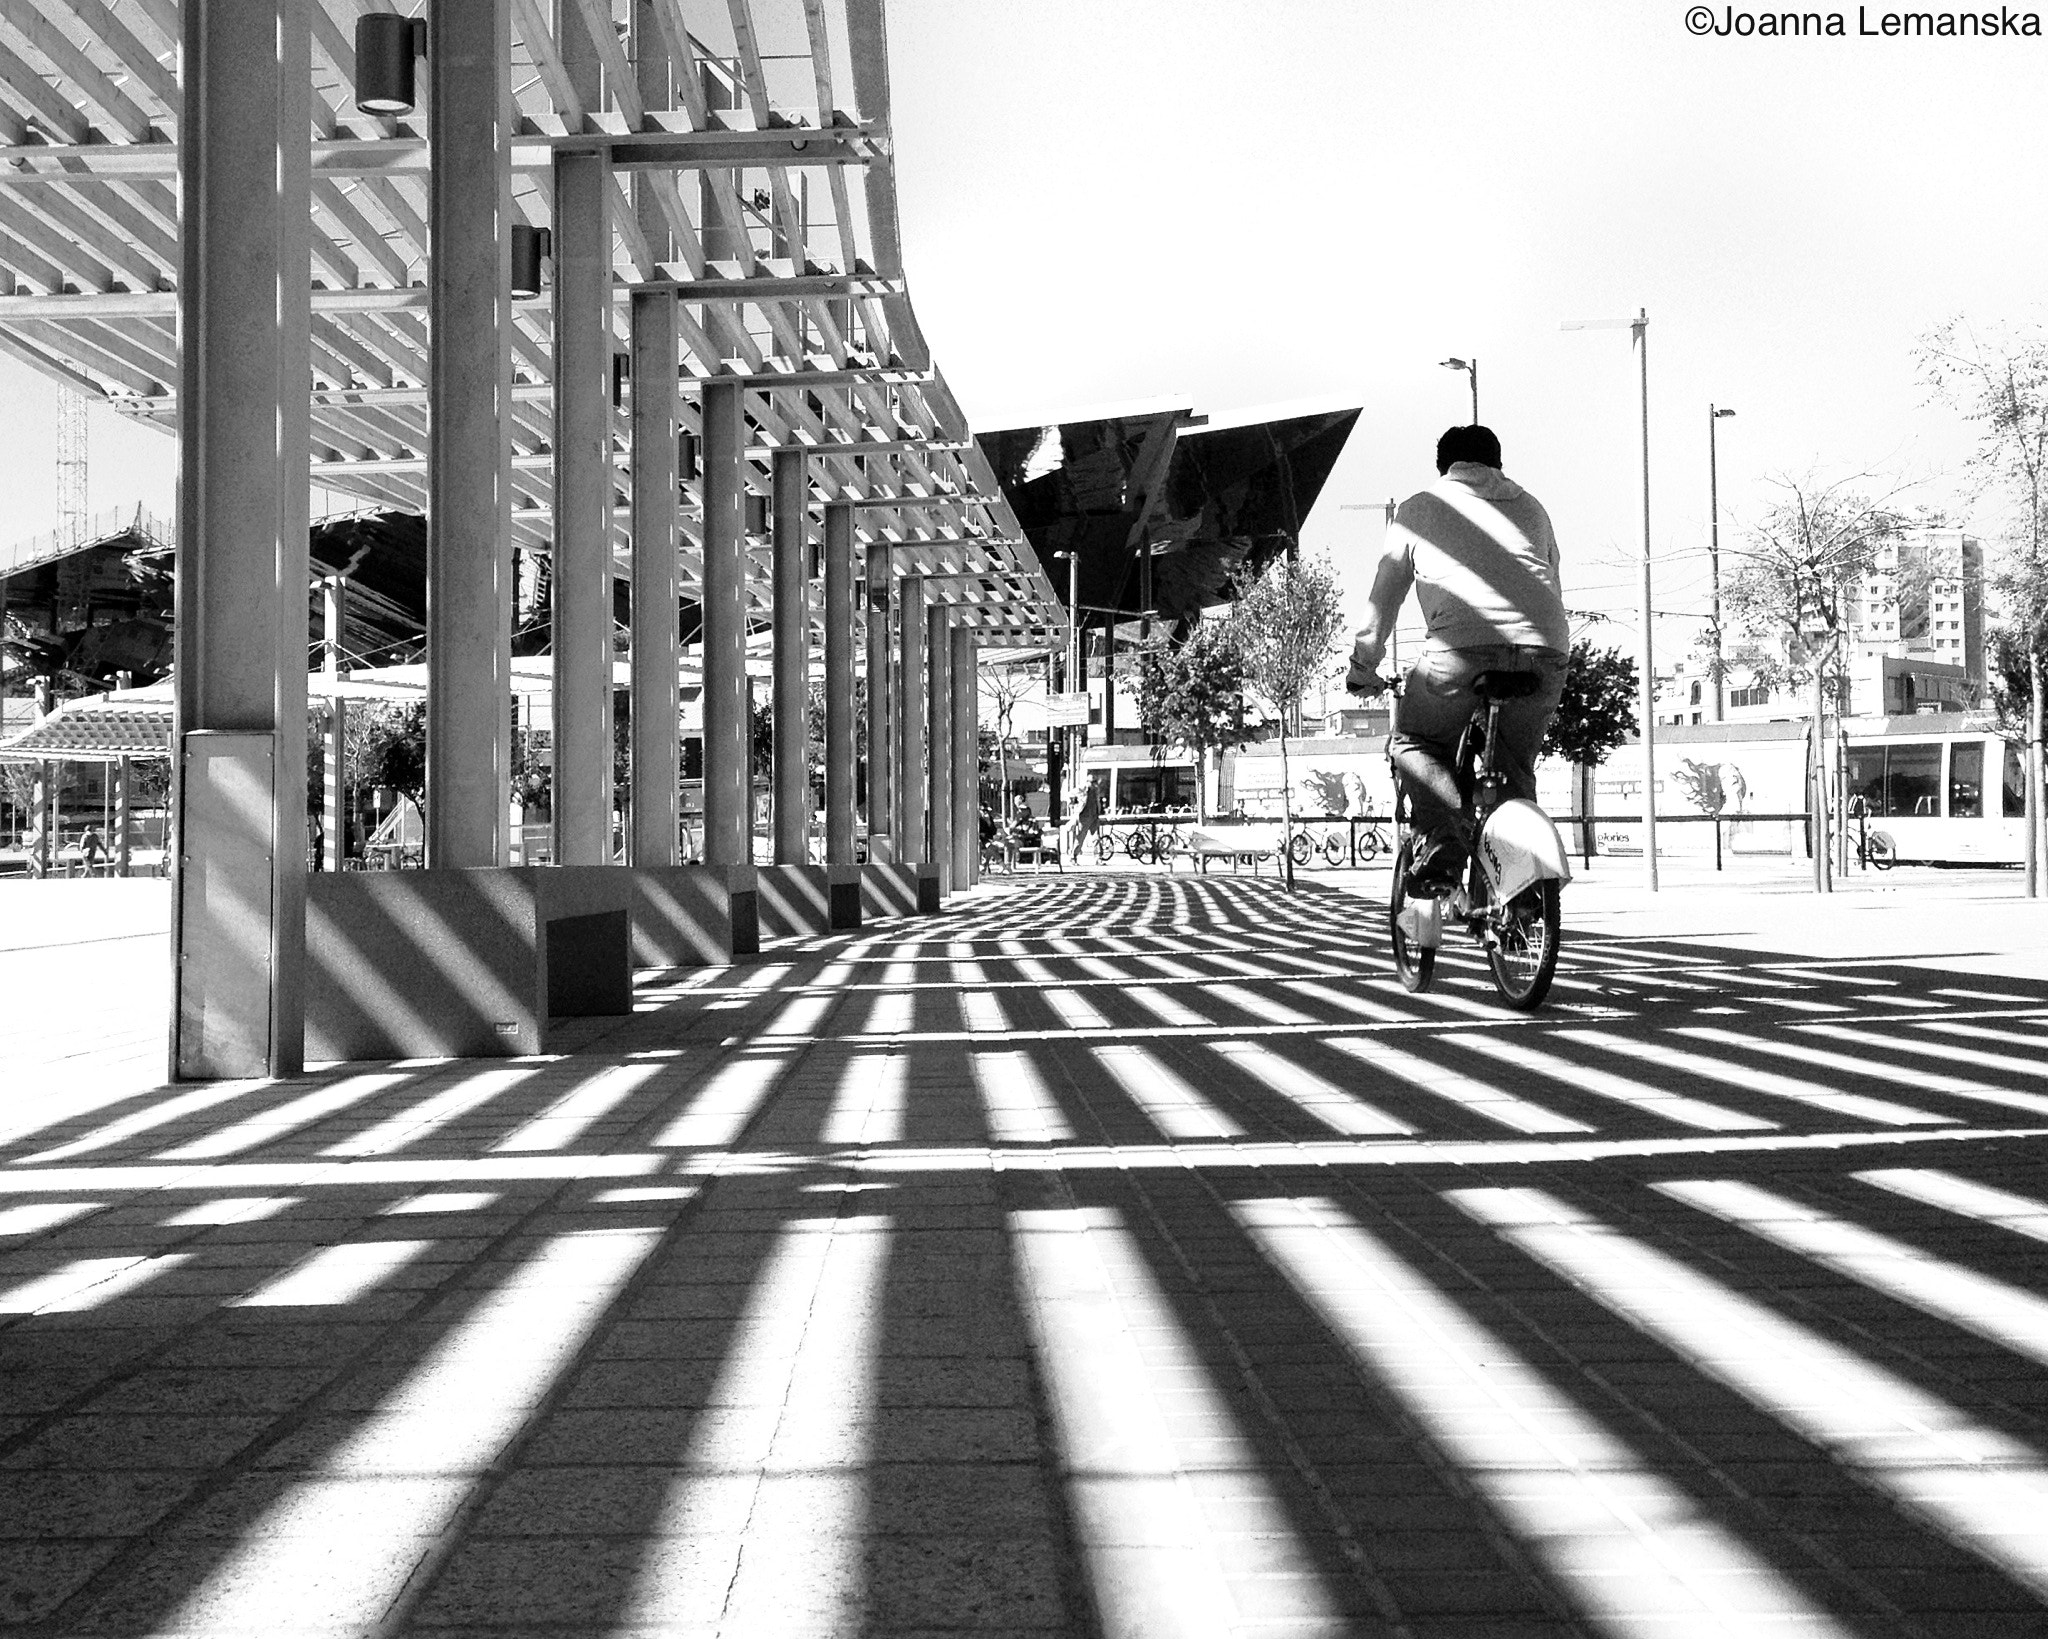 Photograph In stripes by Joanna Lemanska on 500px